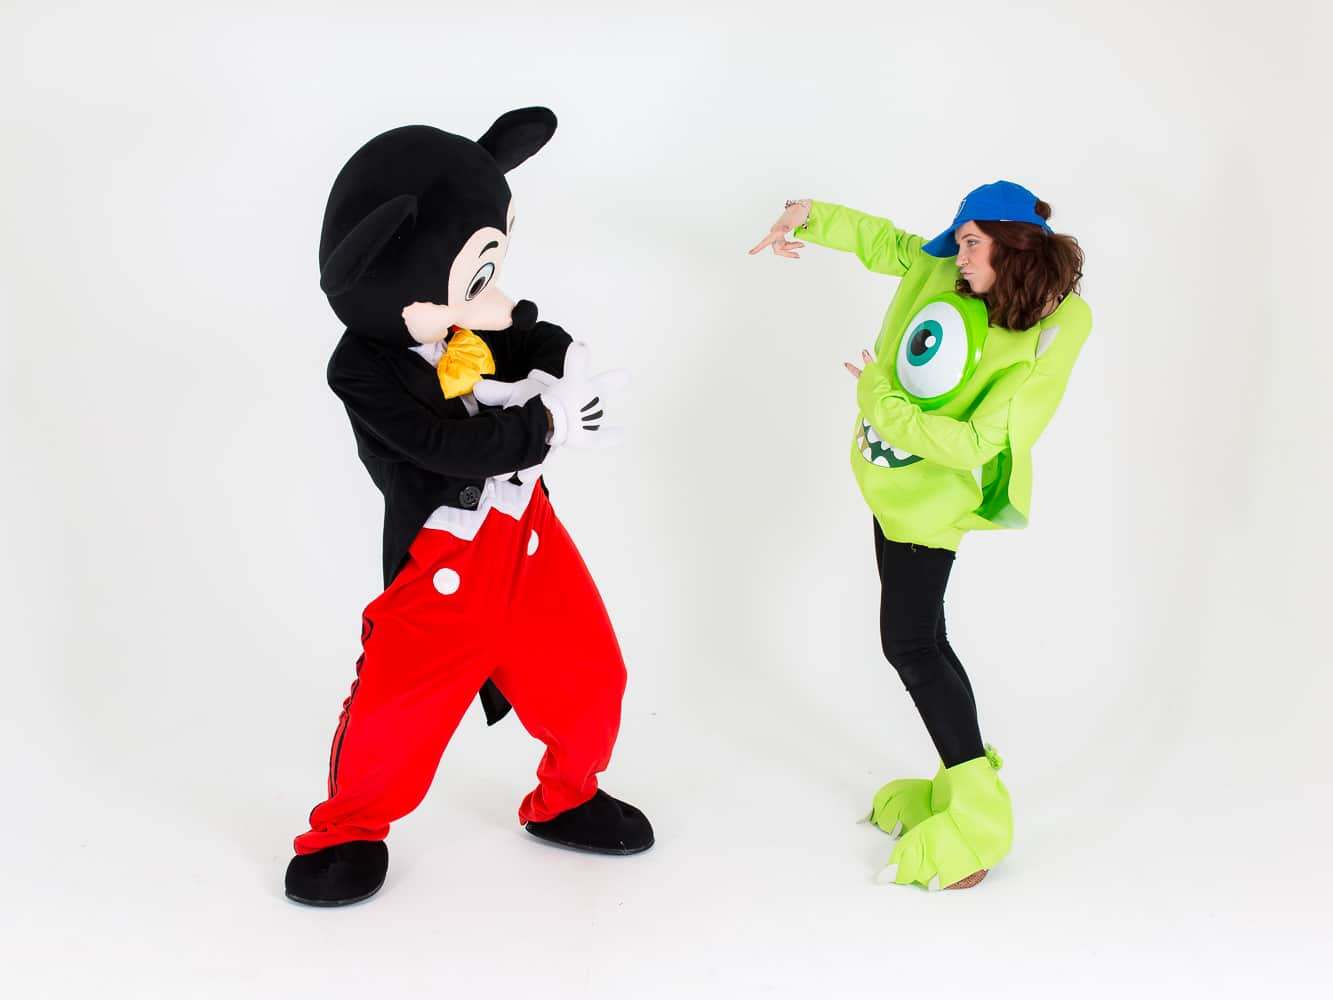 Mike Wazowski and Mickey Mouse having a pose off